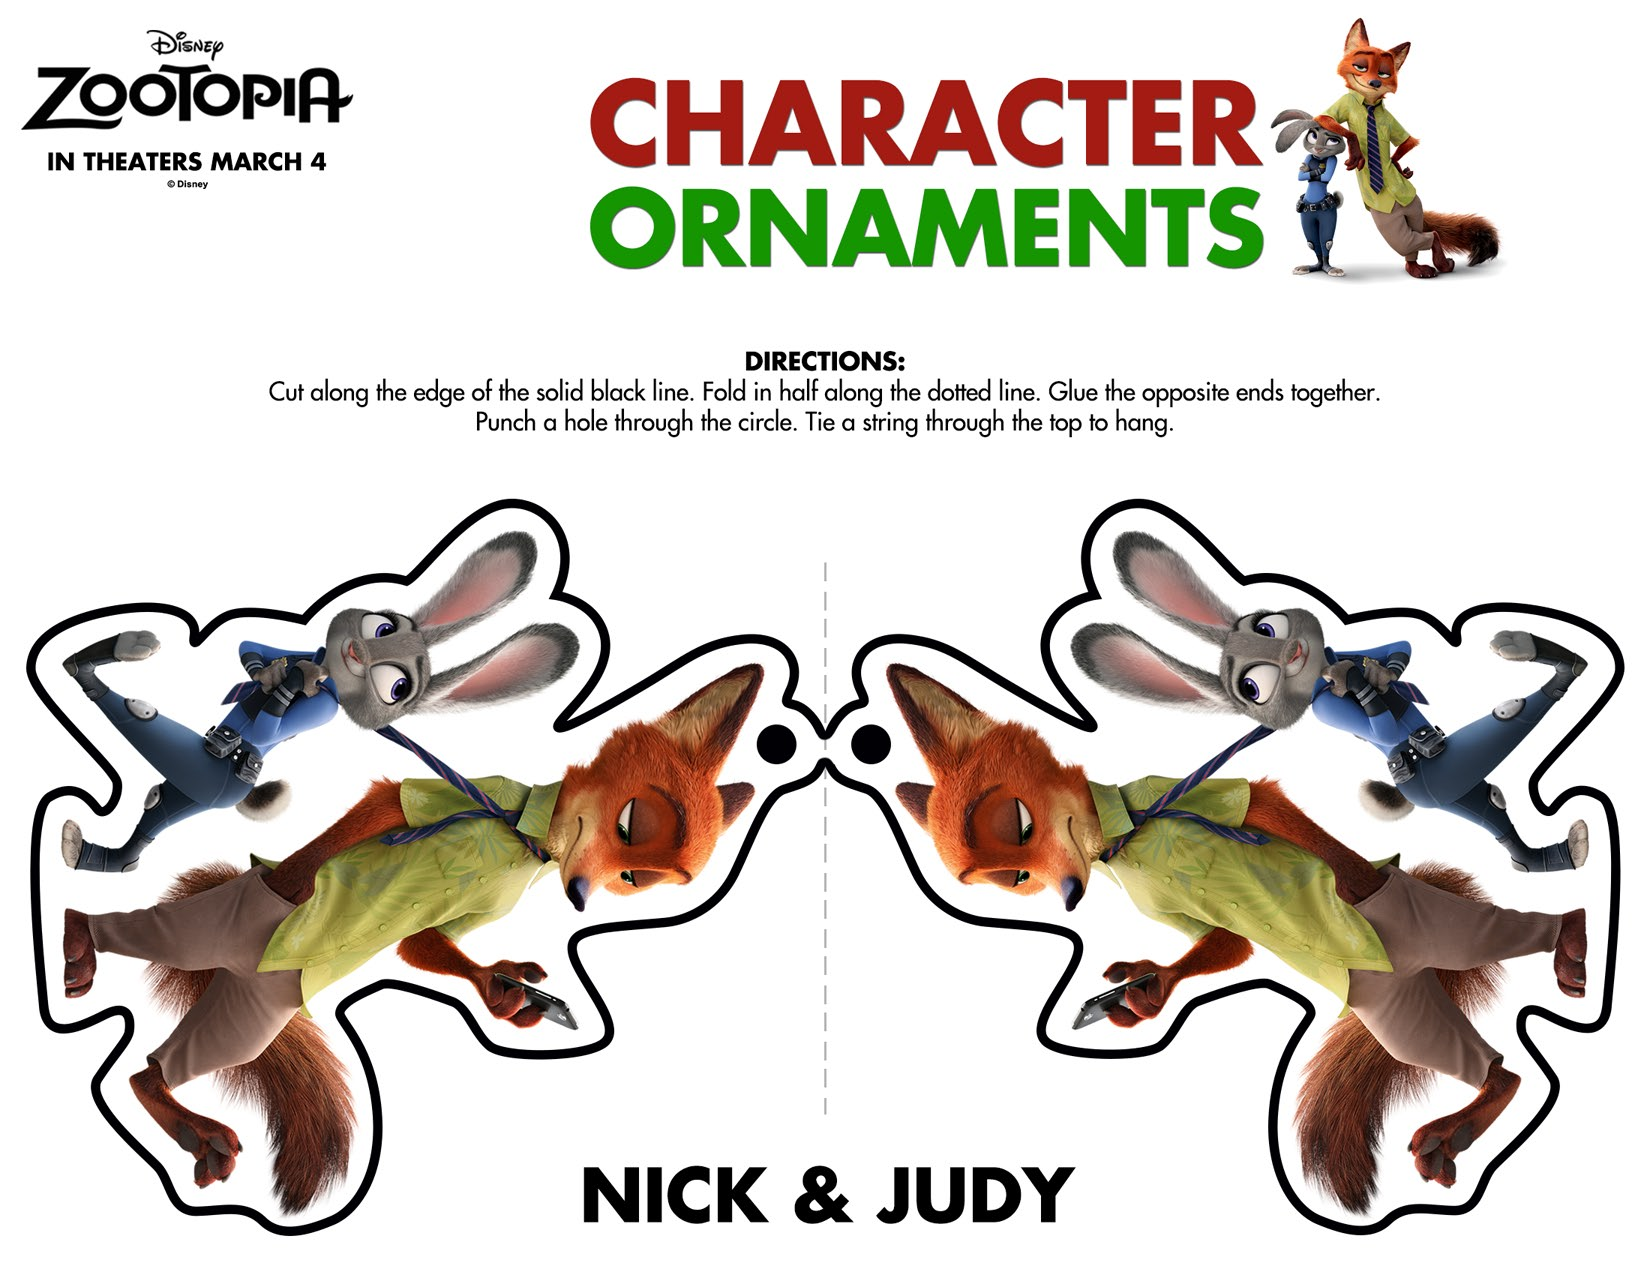 The art of zootopia pdf free